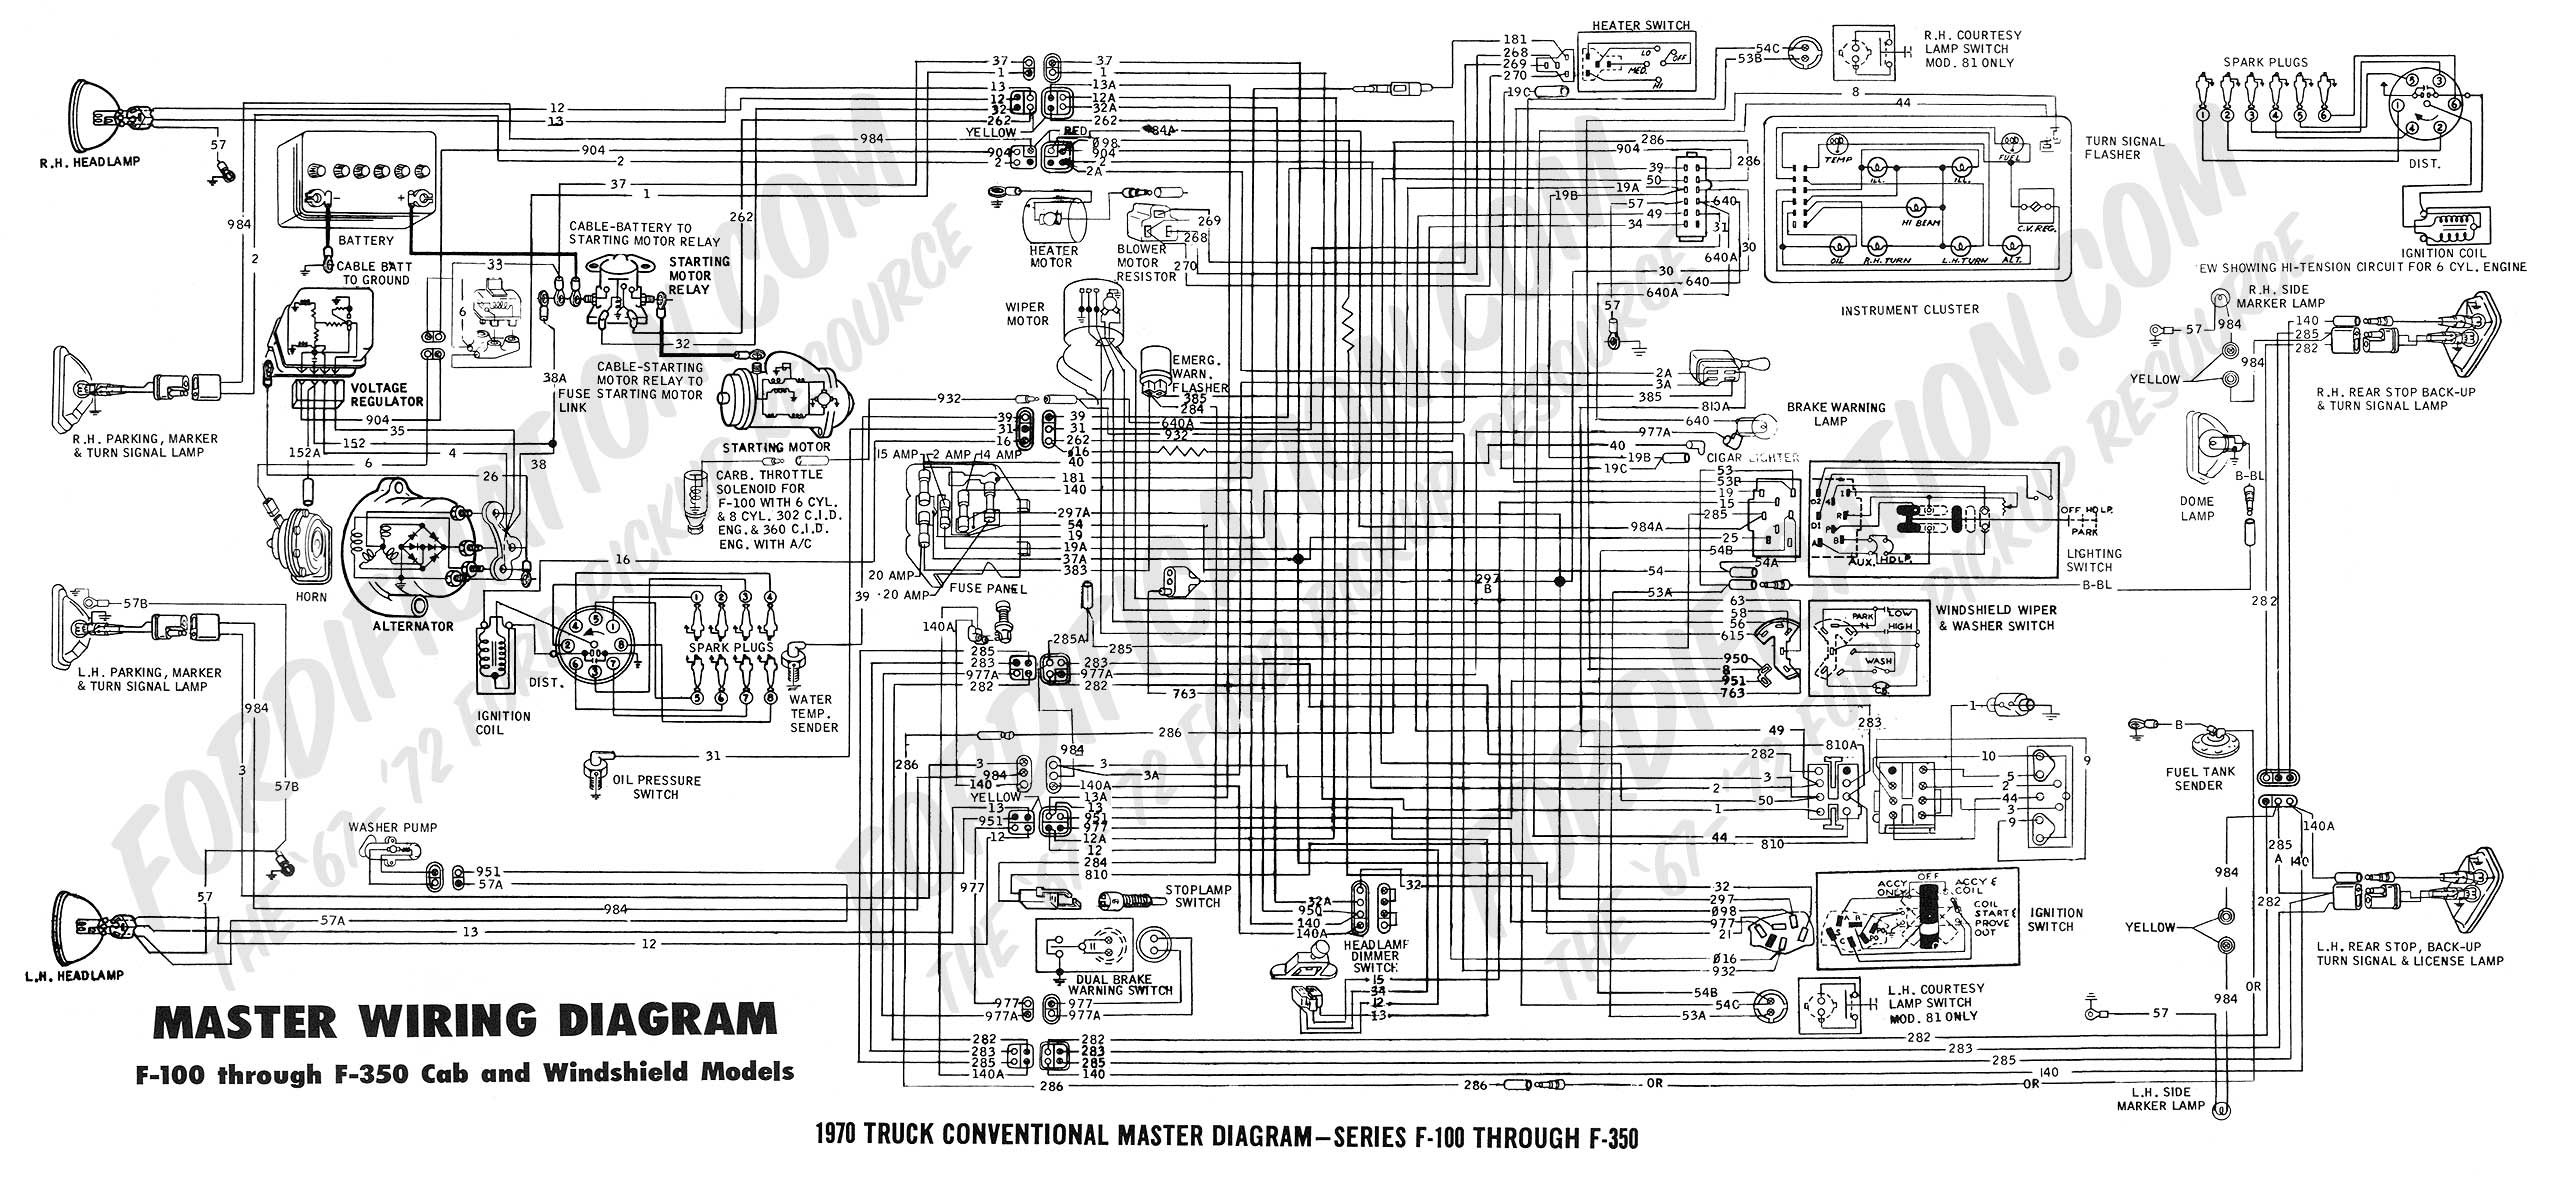 1977 F150 Fuse Diagram List Of Schematic Circuit 2005 E350 Box 1972 Ford F100 Wiring Schematics Data Schema Rh Site De Joueurs Com Panel